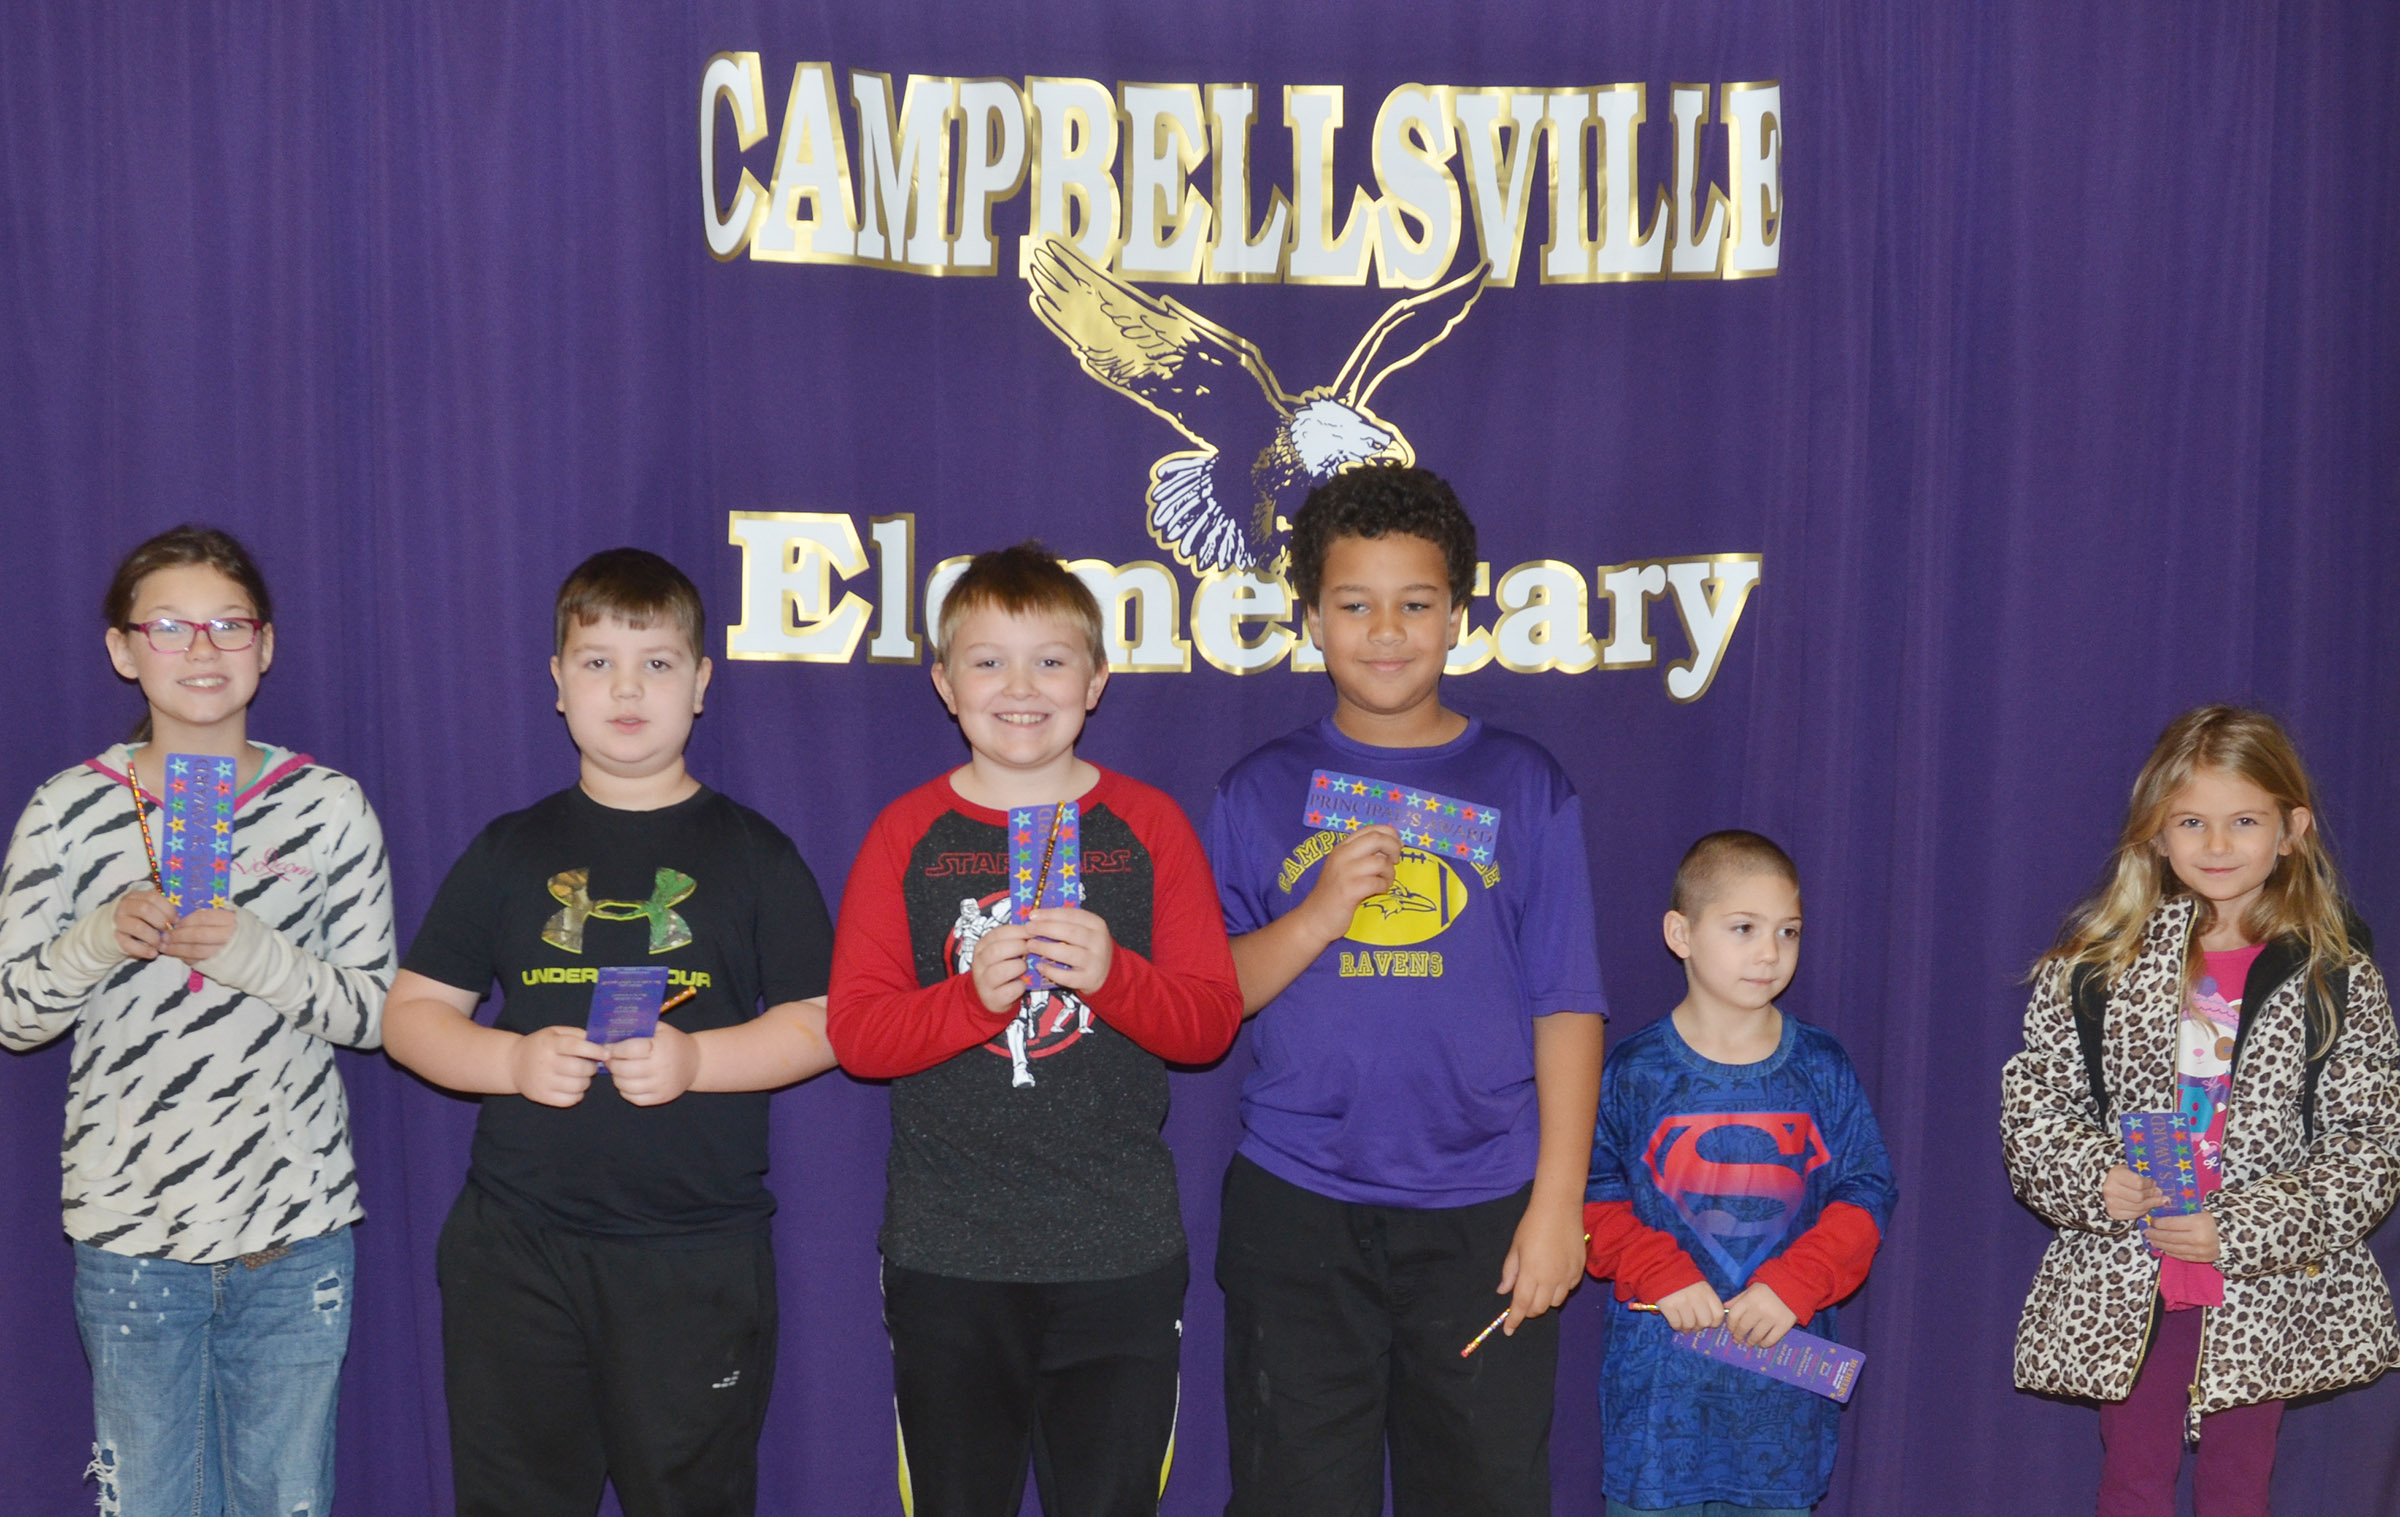 From left are fifth-grader Destiny Milby, second-grader Luke Mardis, third-grader Griffin Skaggs, fourth-grader Zarek Stone, kindergartener Josiah Dean and first-grader Gracie Gebler.